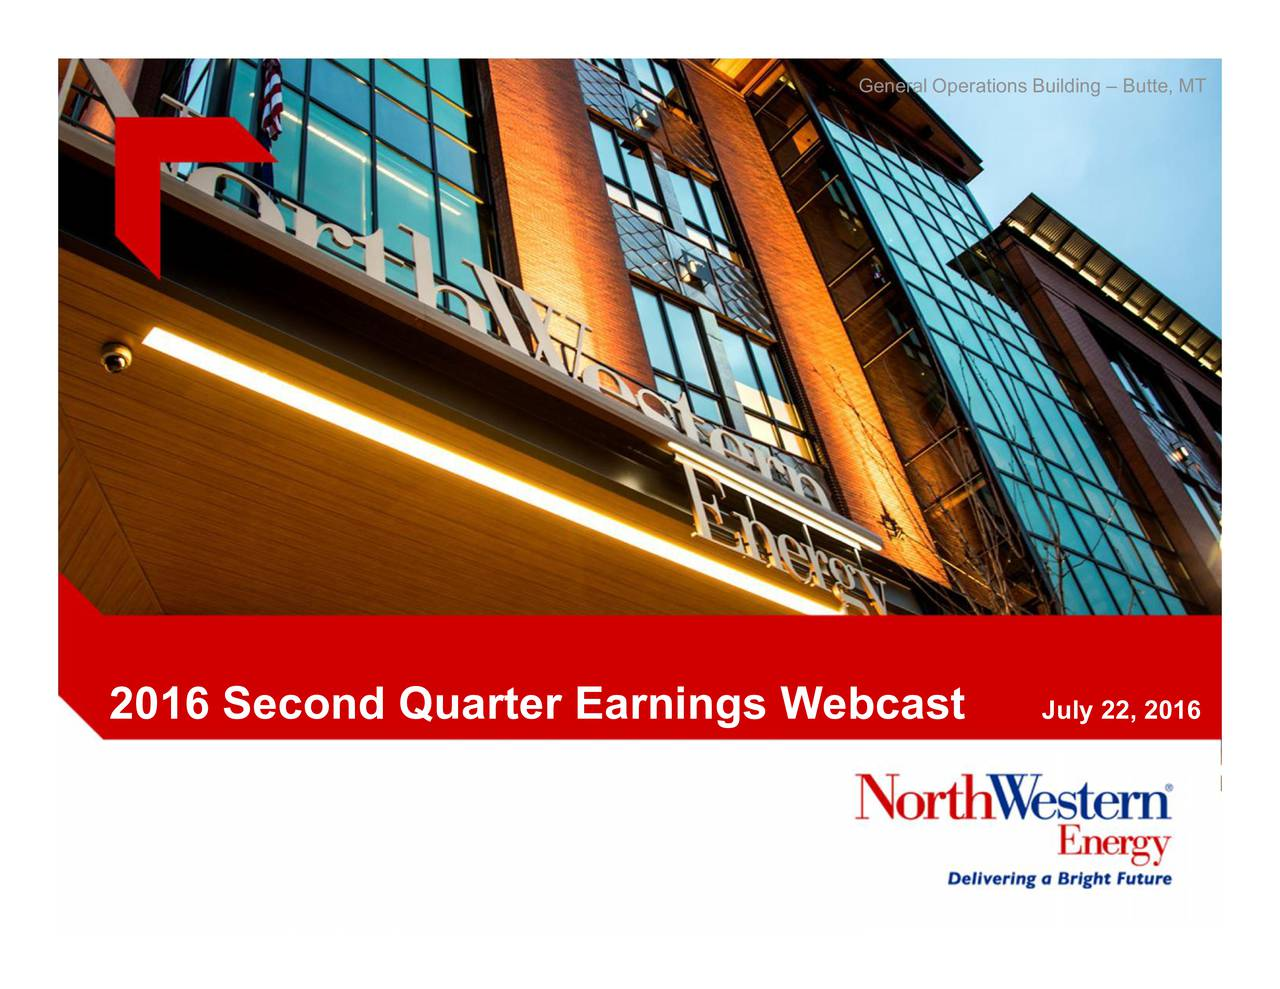 2016 Second Quarter Earnings Webcast July 22, 2016